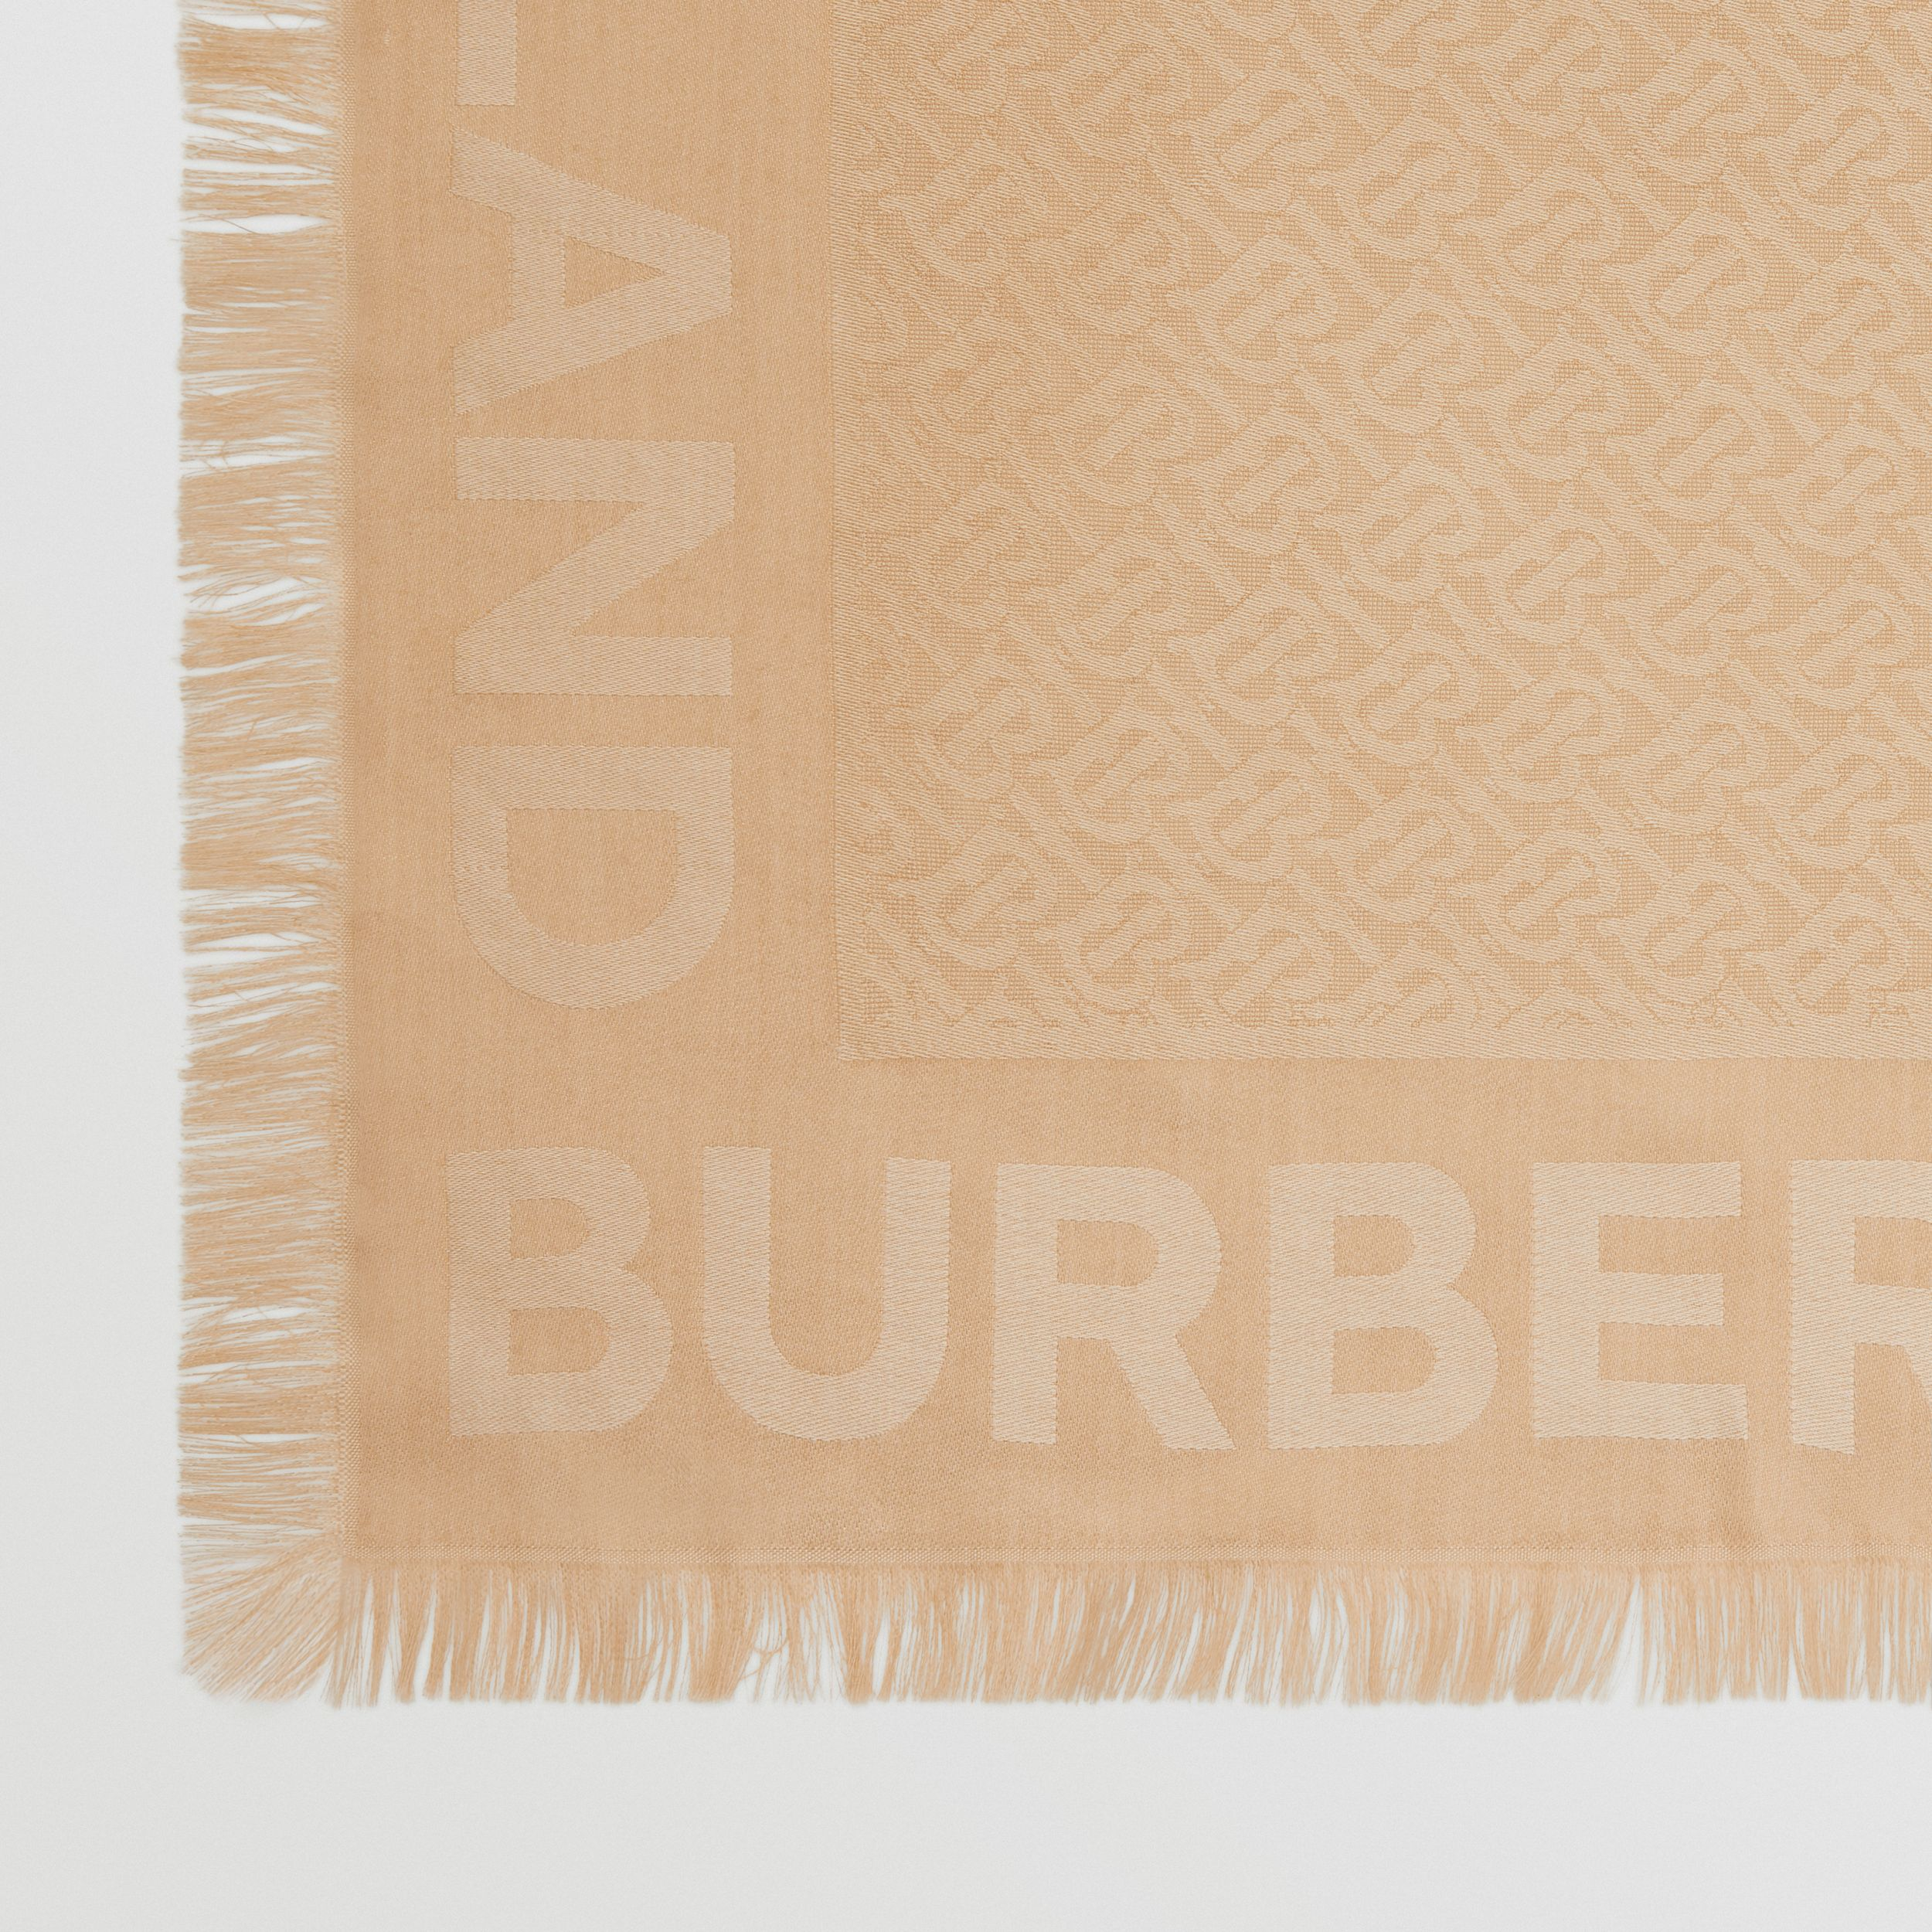 Monogram Silk Wool Jacquard Large Square Scarf in Honey | Burberry United States - 2